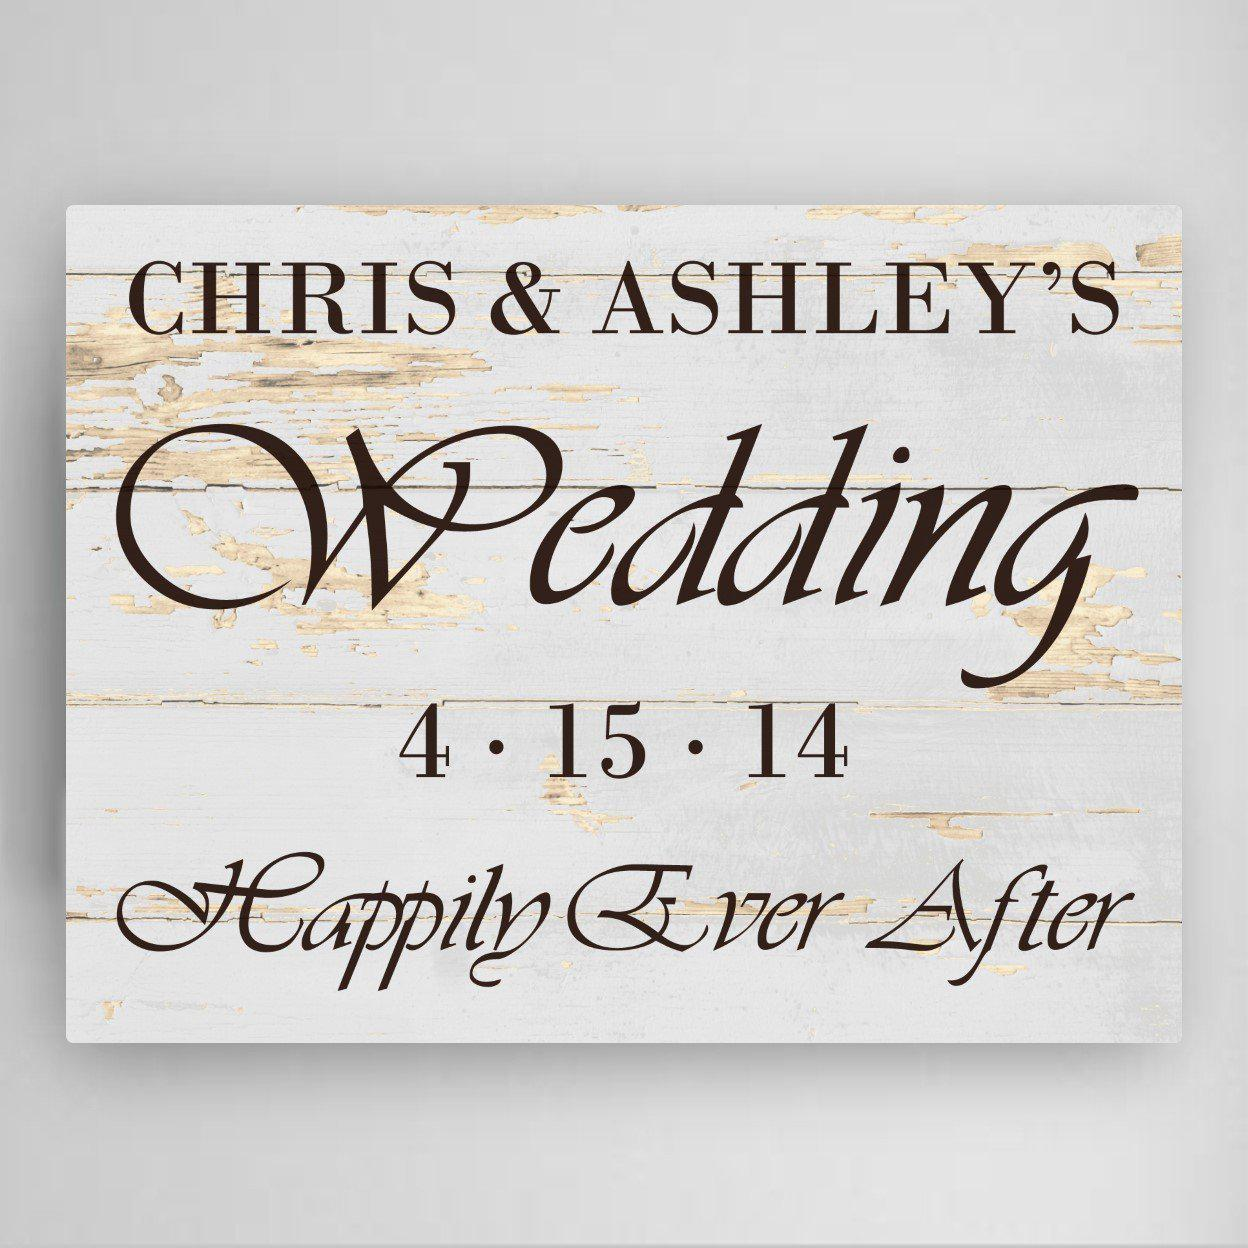 Personalized-Wedding-Reception-Canvas-Sign